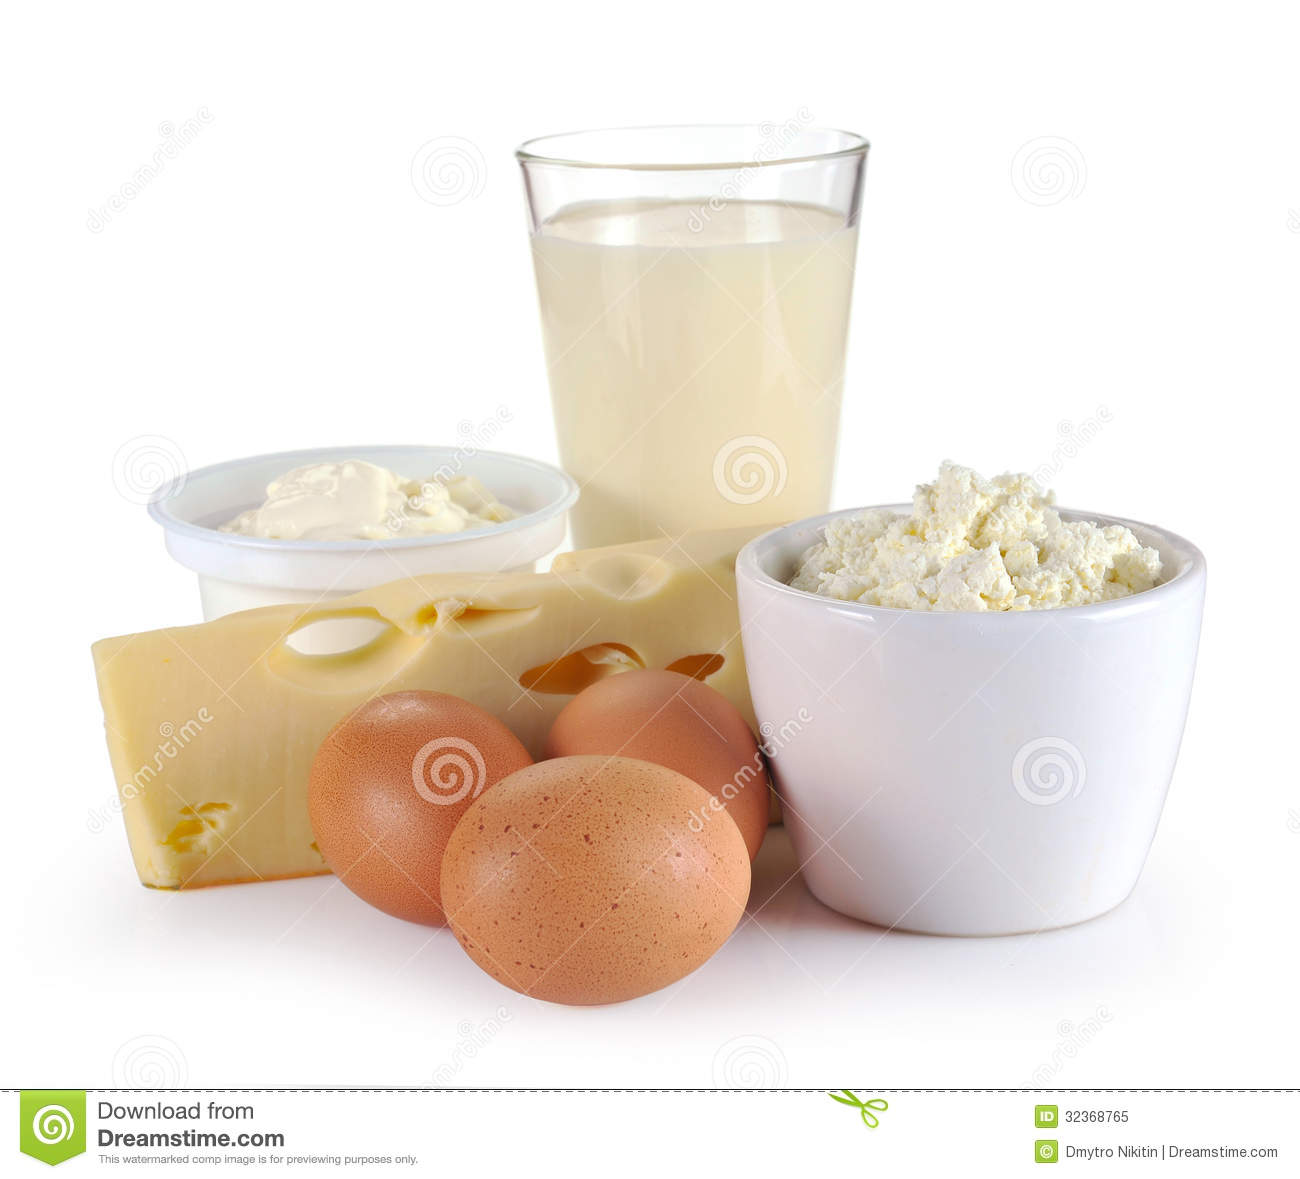 is cottage cheese fattening